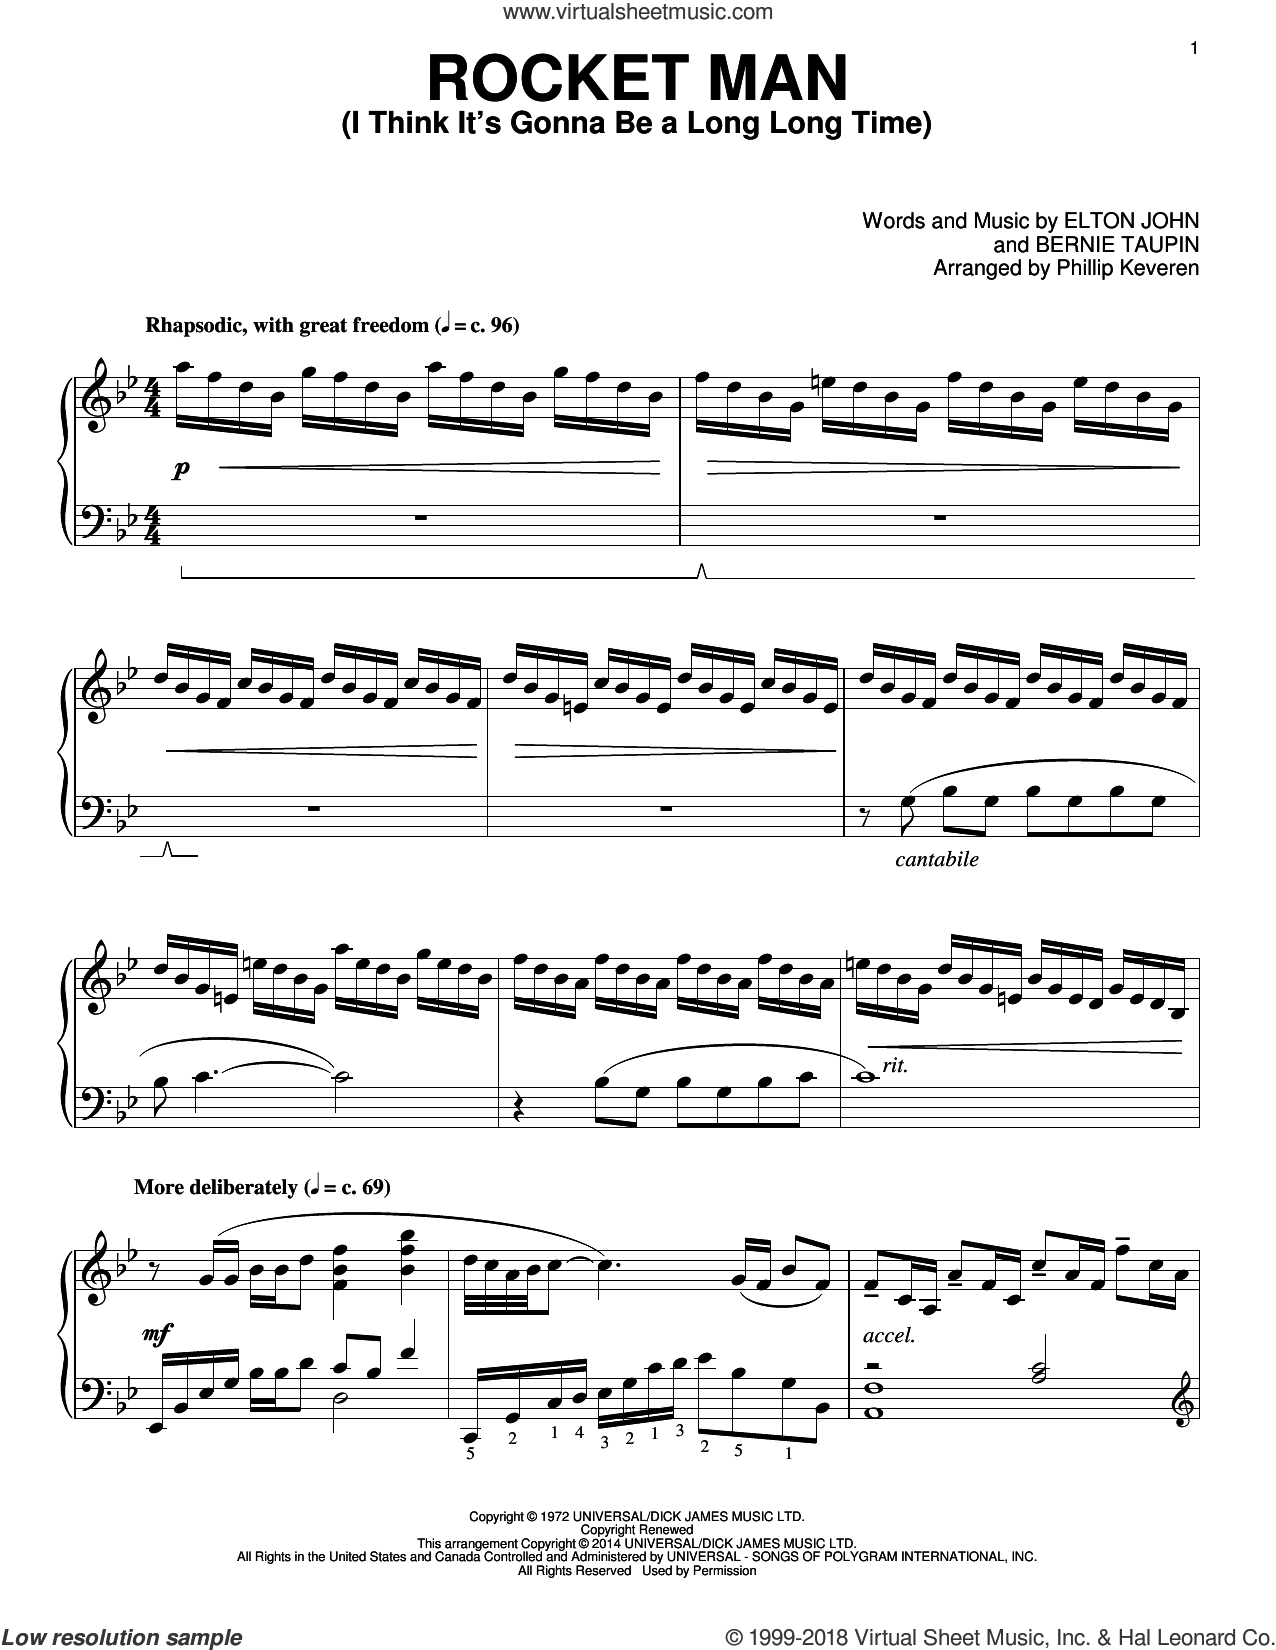 Rocket Man (I Think It's Gonna Be A Long Long Time) sheet music for piano solo by Bernie Taupin